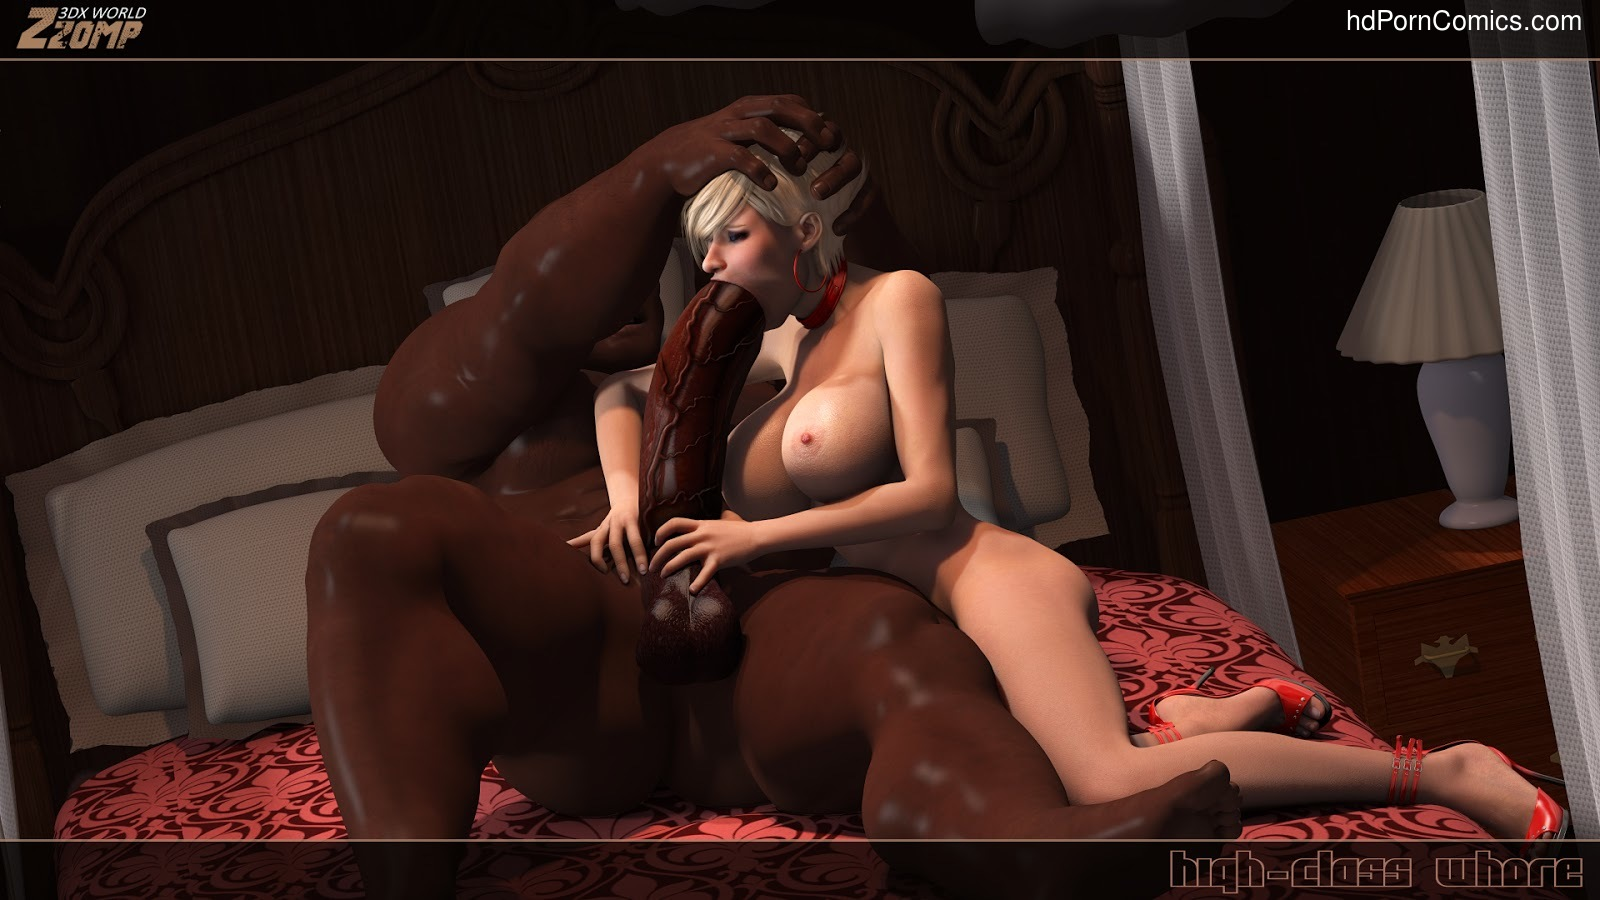 3D COMICS-Zzomp- High-Class Whore 23 free sex comic